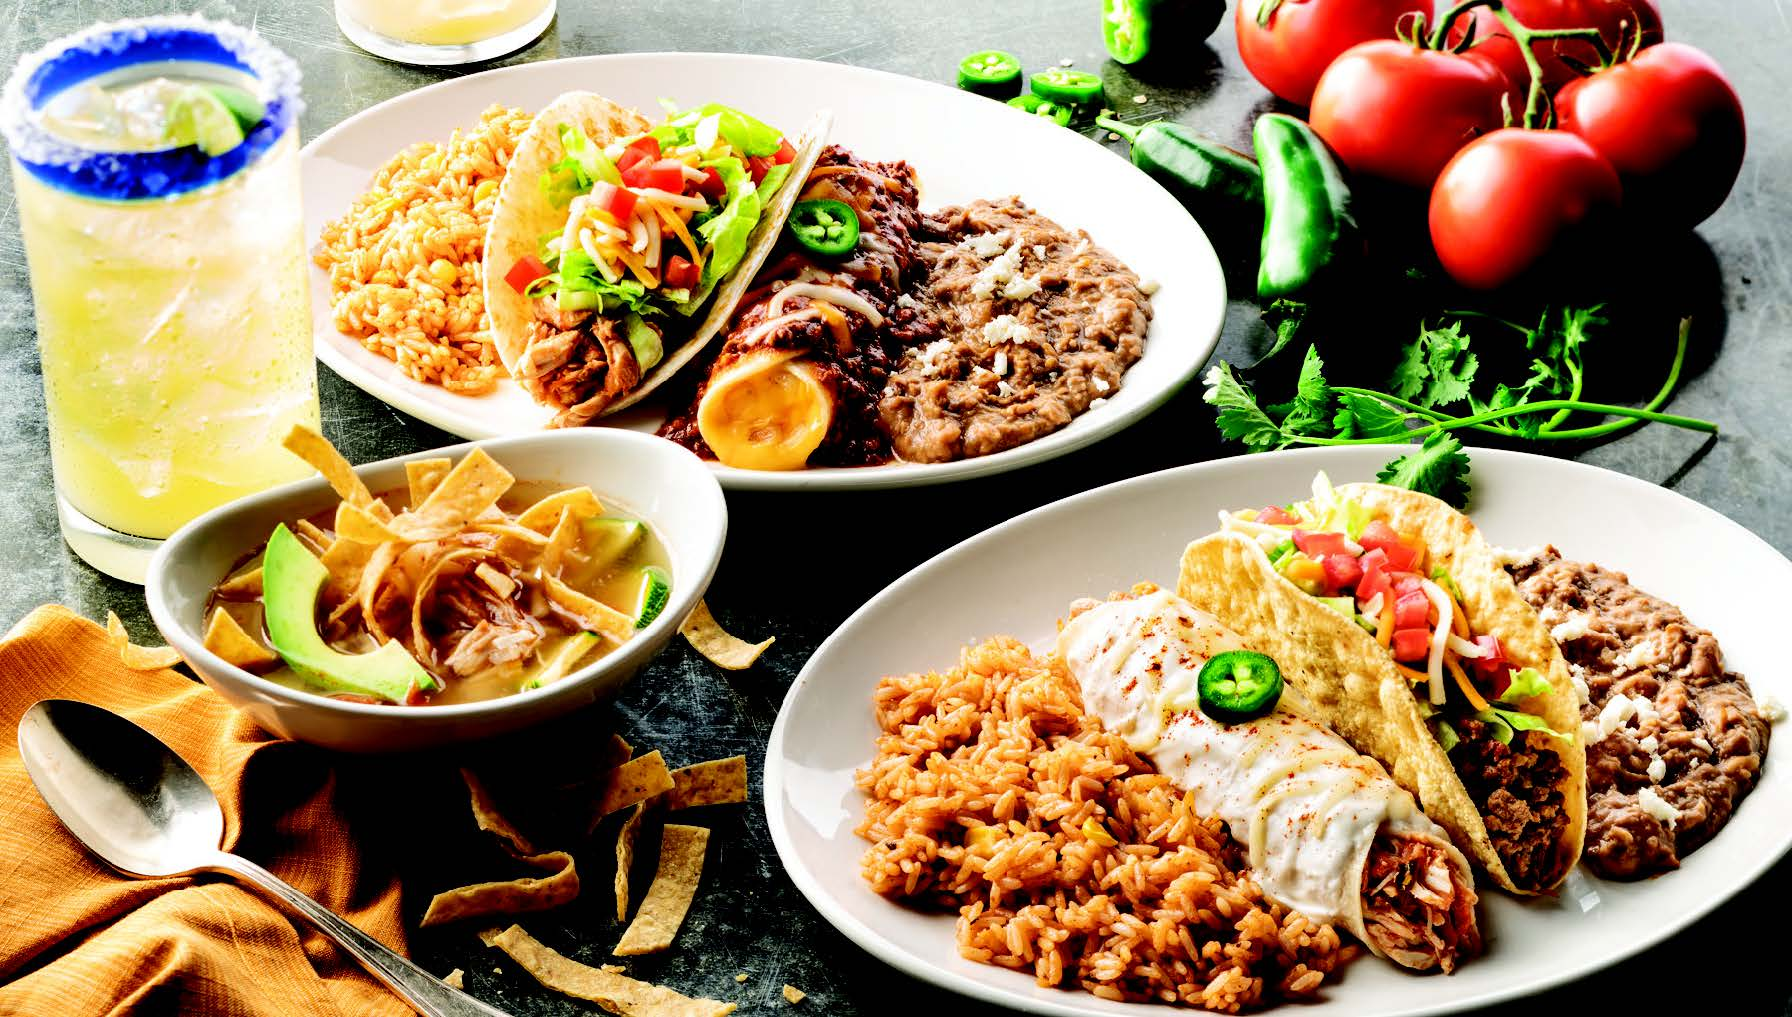 A Combo 2 meal at On the Border / Photo courtesy On the Border